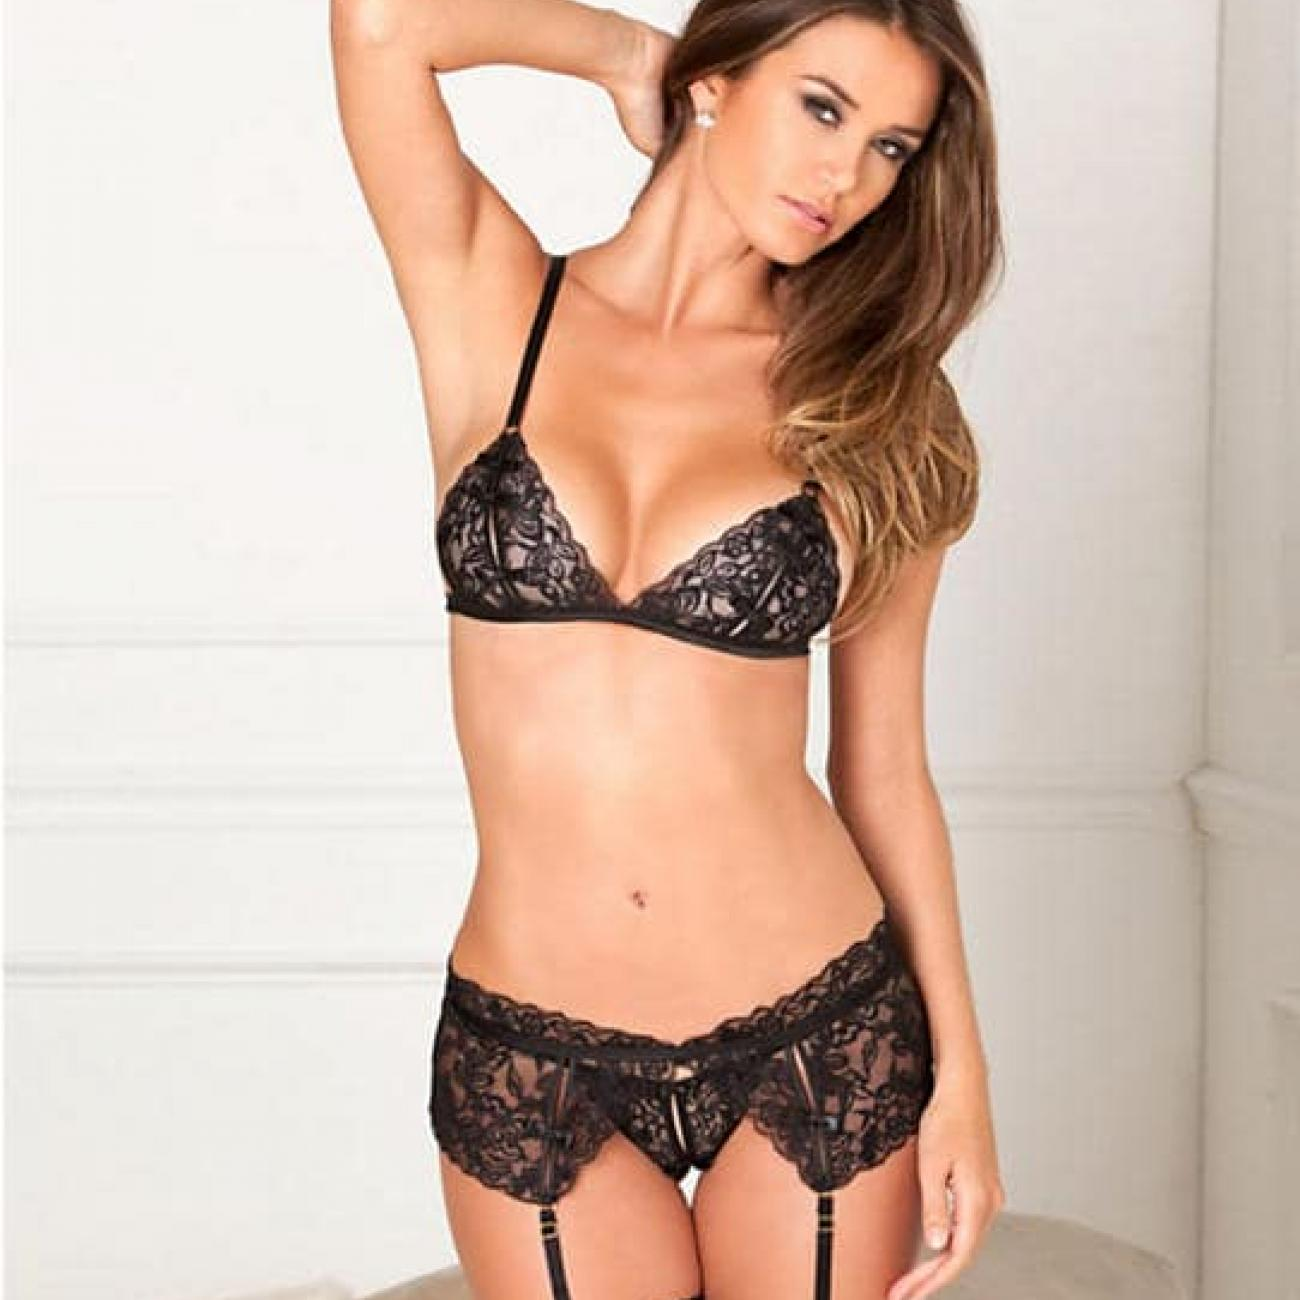 5 things to keep in mind while Booking House Wife Escorts In Mumbai